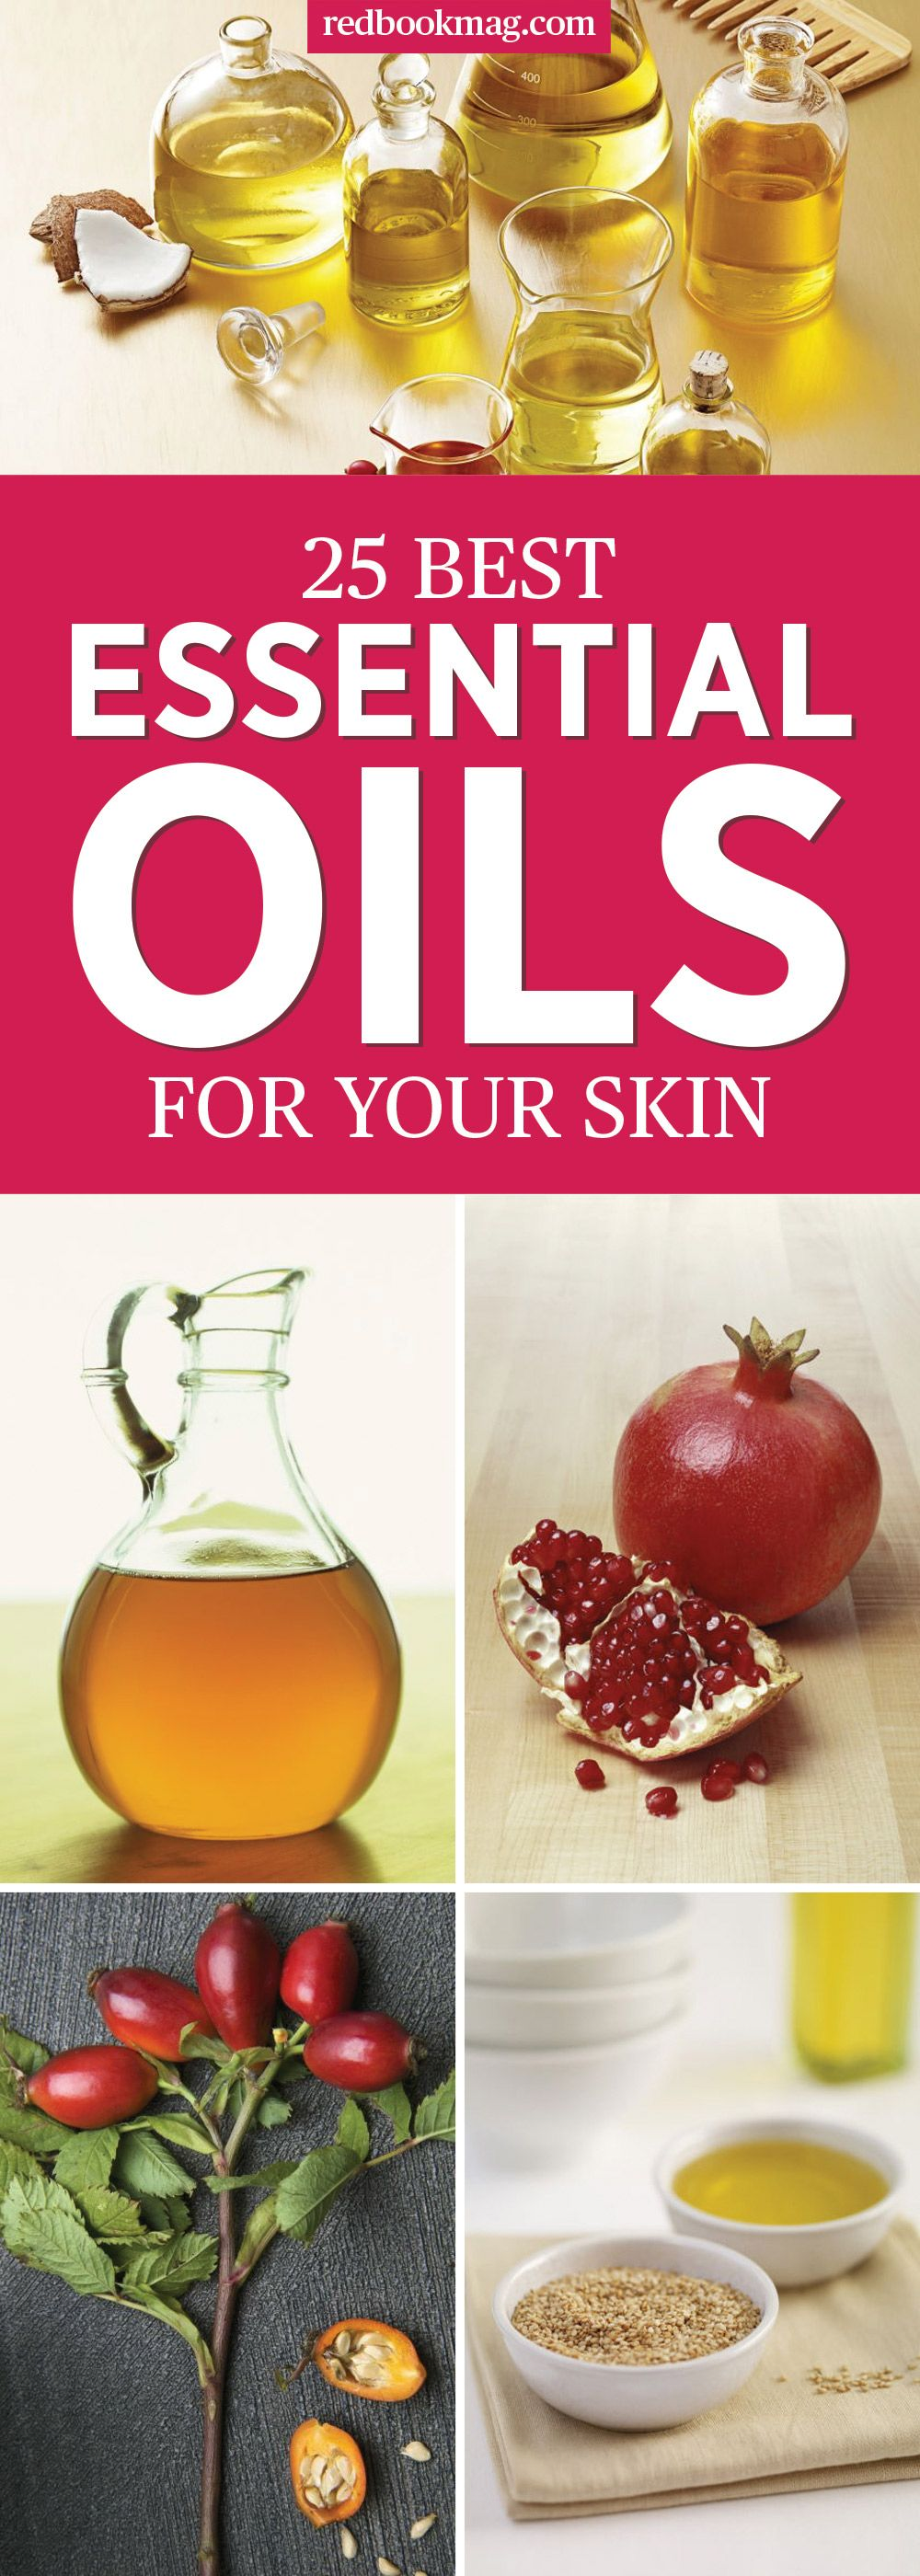 25 Best Essential Oils For Skin Top Skincare Oils For Face And Body